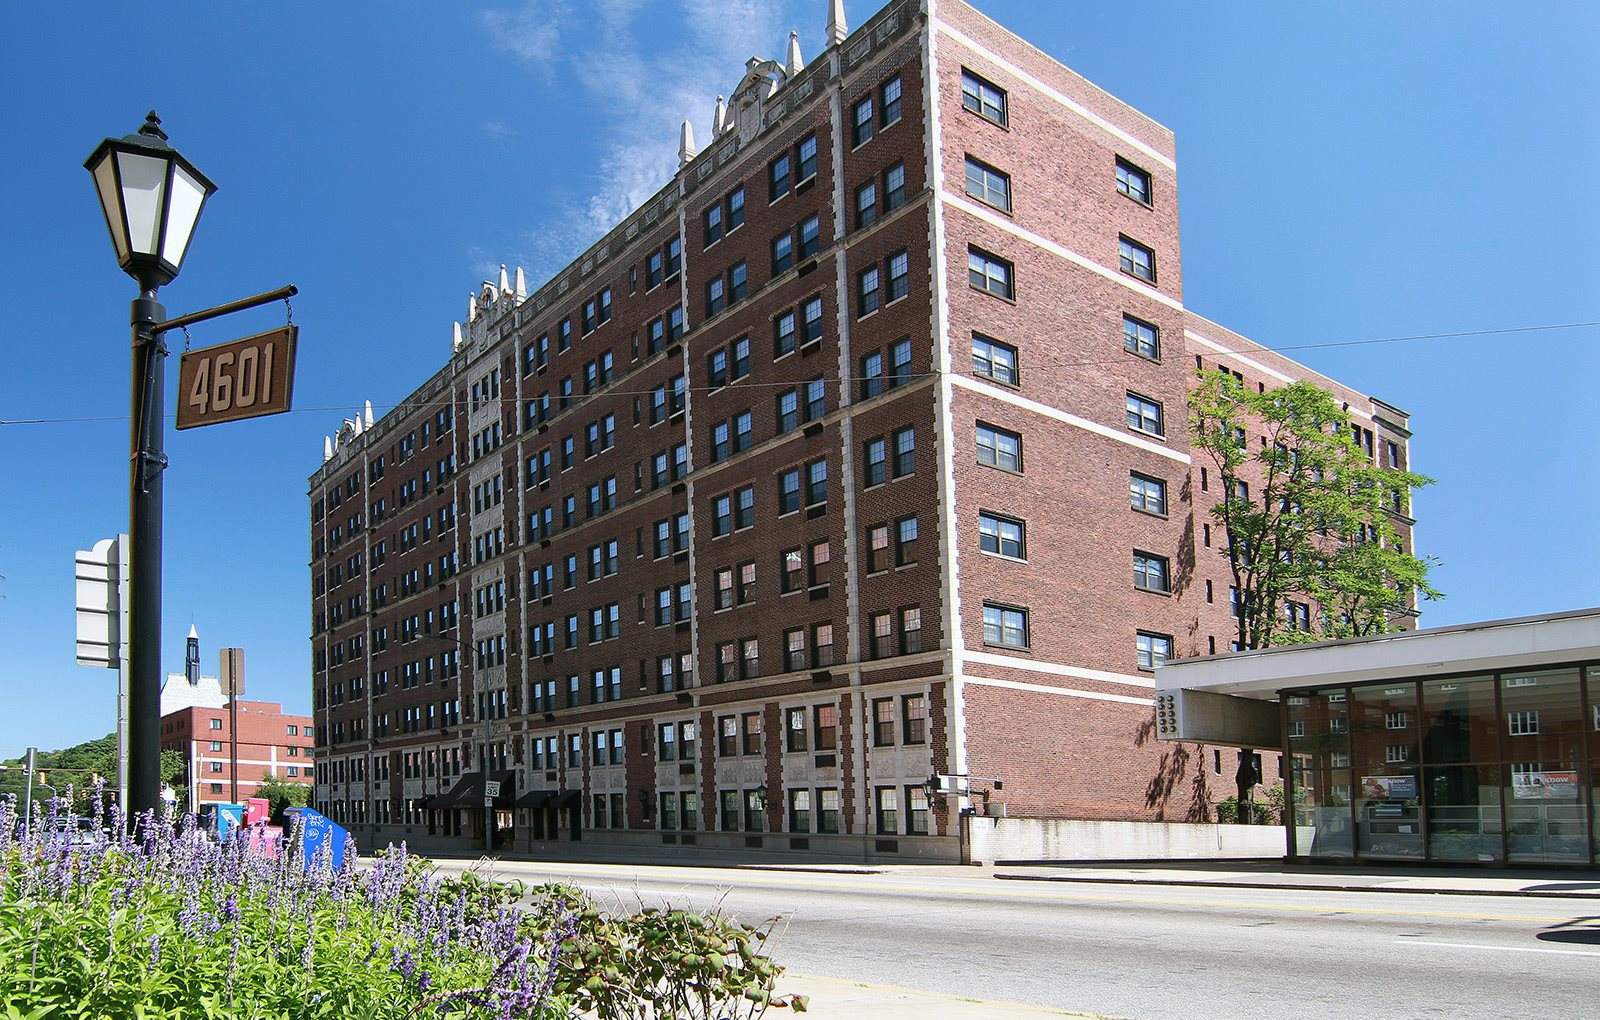 Fairfax Apartments in downtown Pittsburgh